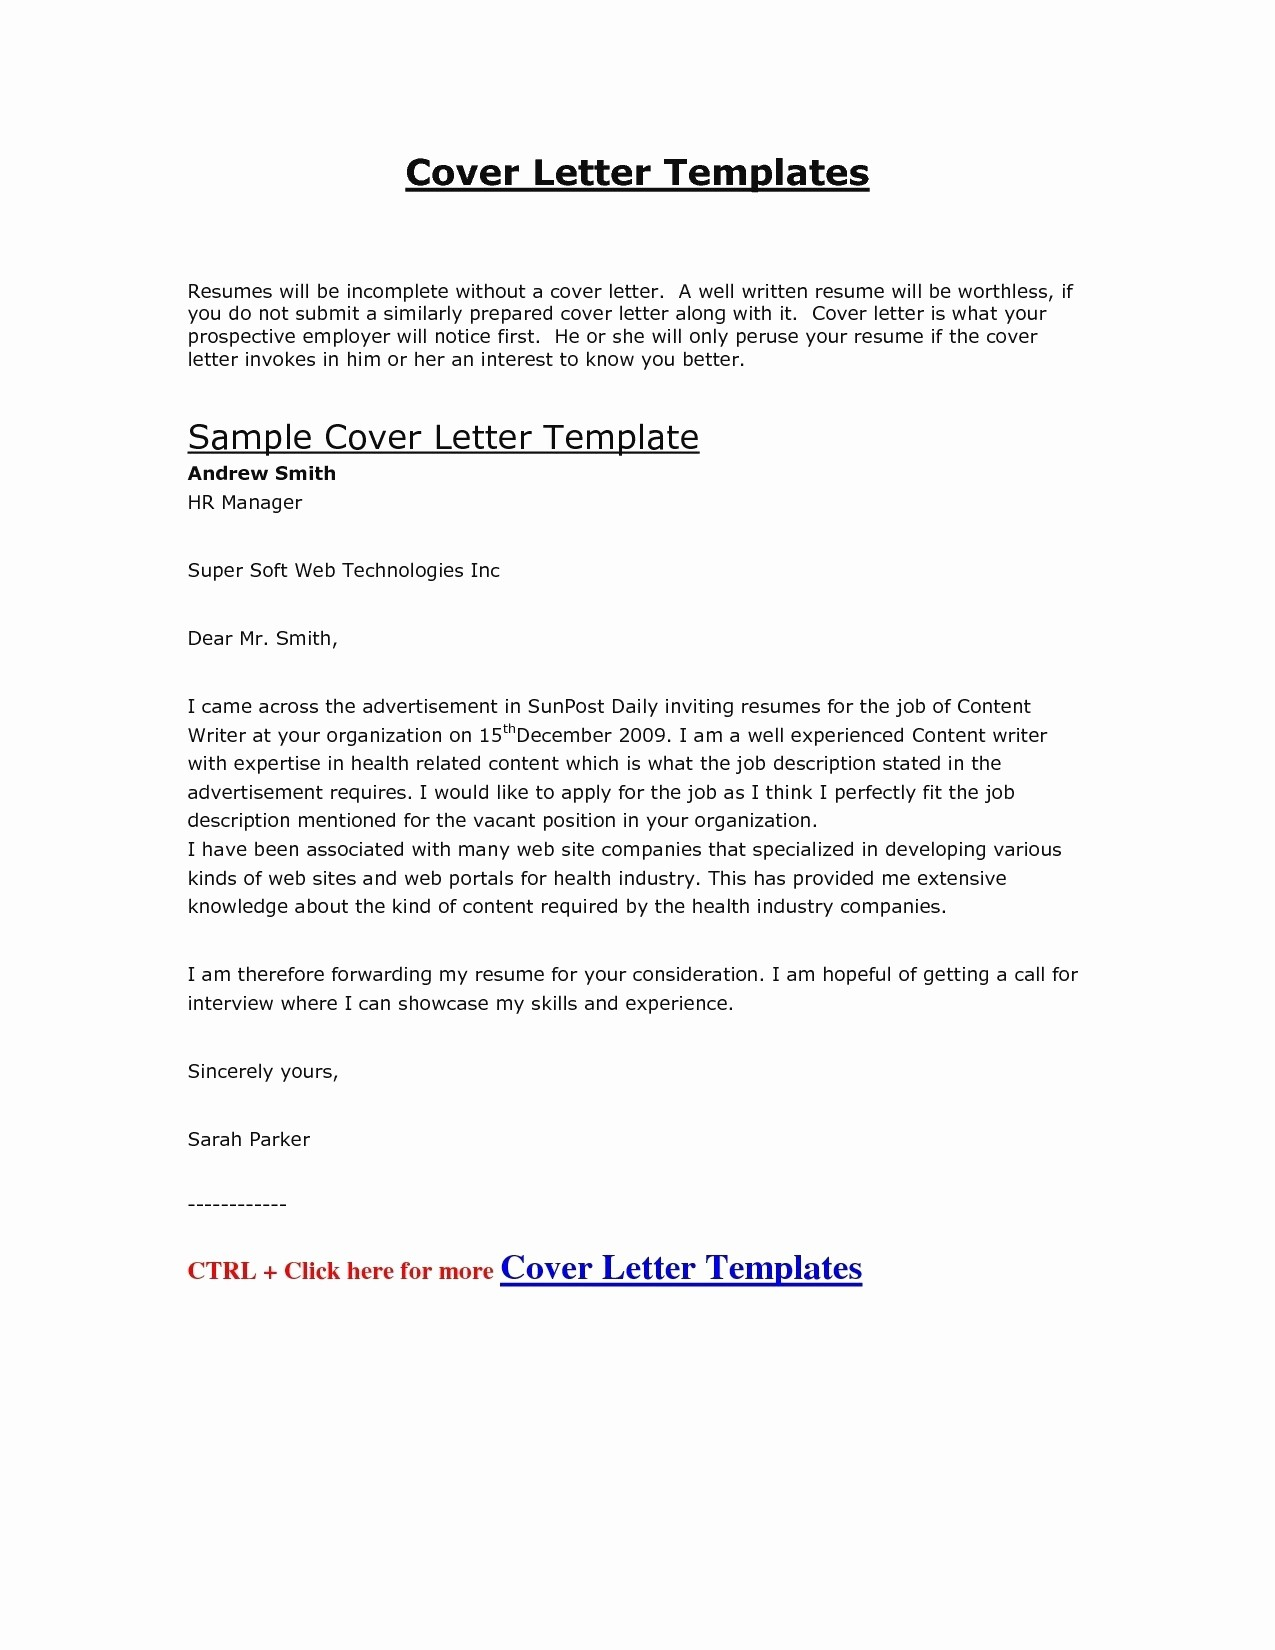 T format Cover Letter Template - Job Application Letter format Template Copy Cover Letter Template Hr